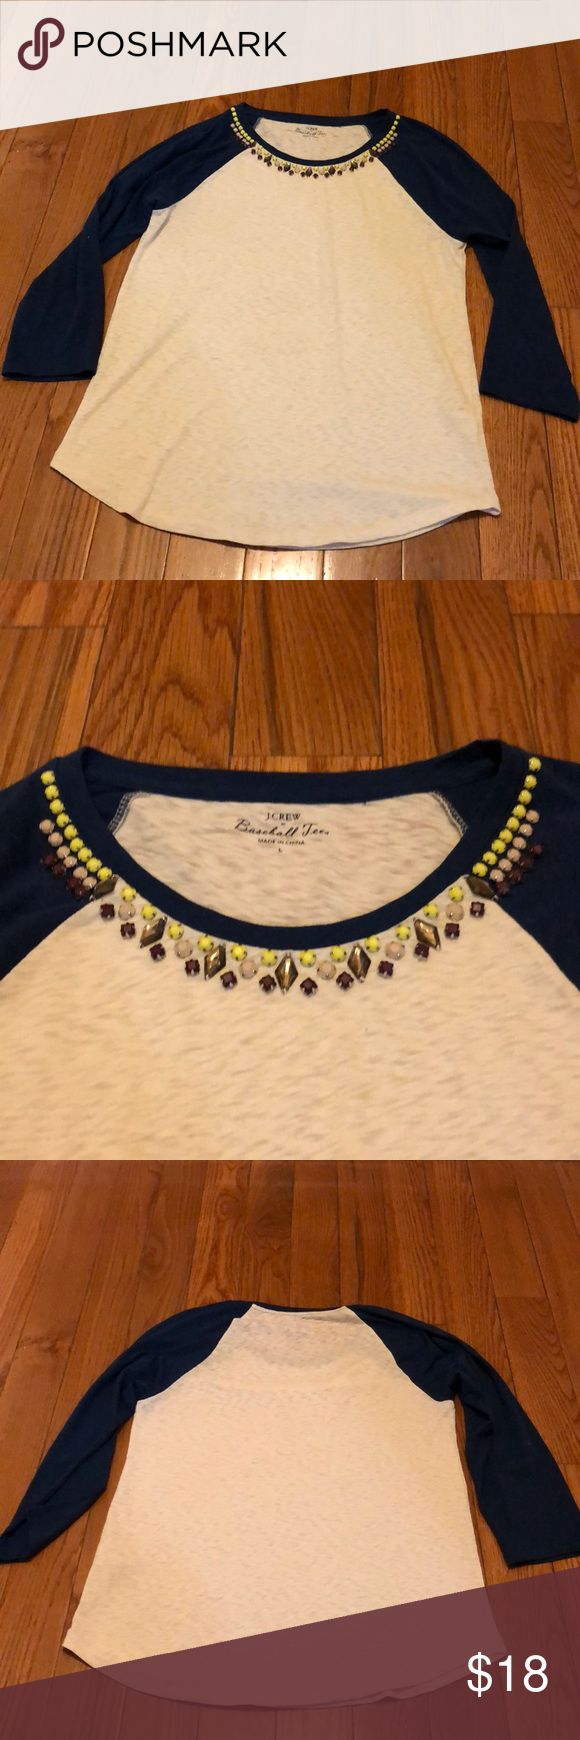 J Crew Jewel Neck Baseball Tee Navy and White A simple, cute and fun baseball tee with a little bling! A great top for year round wear with jeans or shorts! Little wear and great condition! All gems and jewels are in place! J. Crew Tops Tees - Long Sleeve